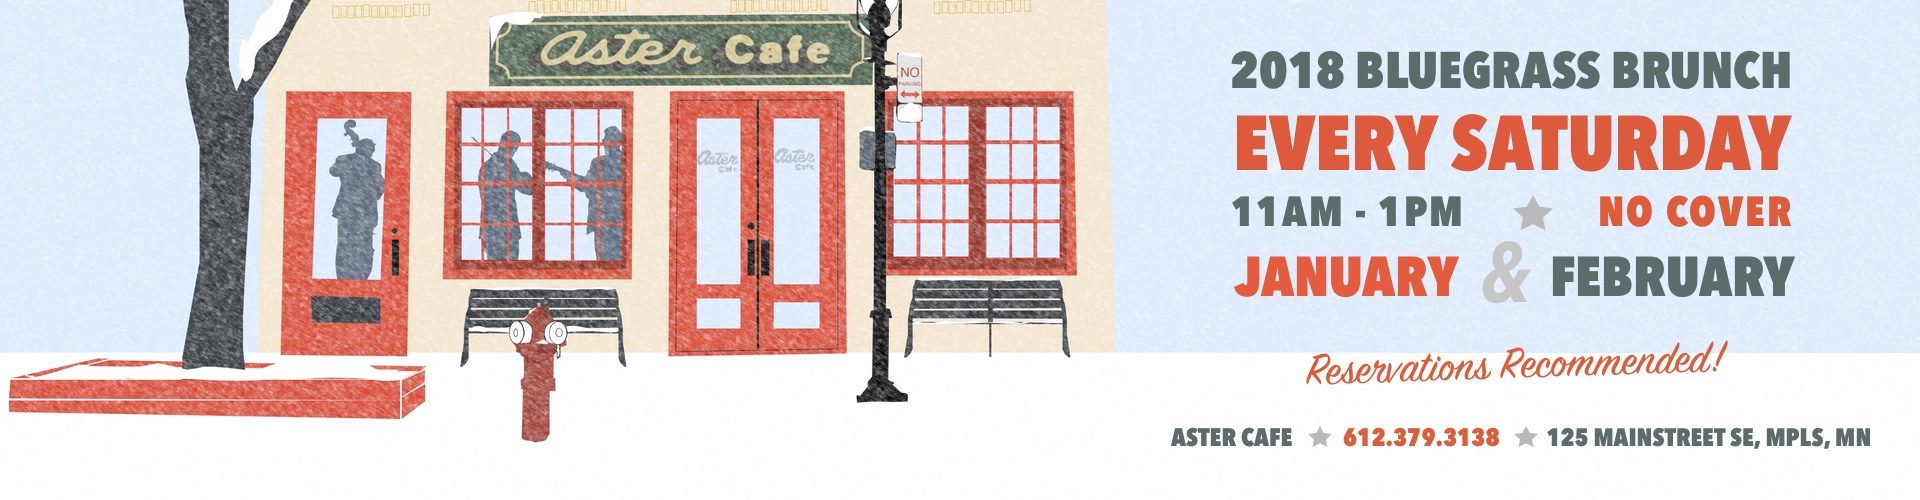 The High 48s 2018 Bluegrass Brunch at the Aster Cafe